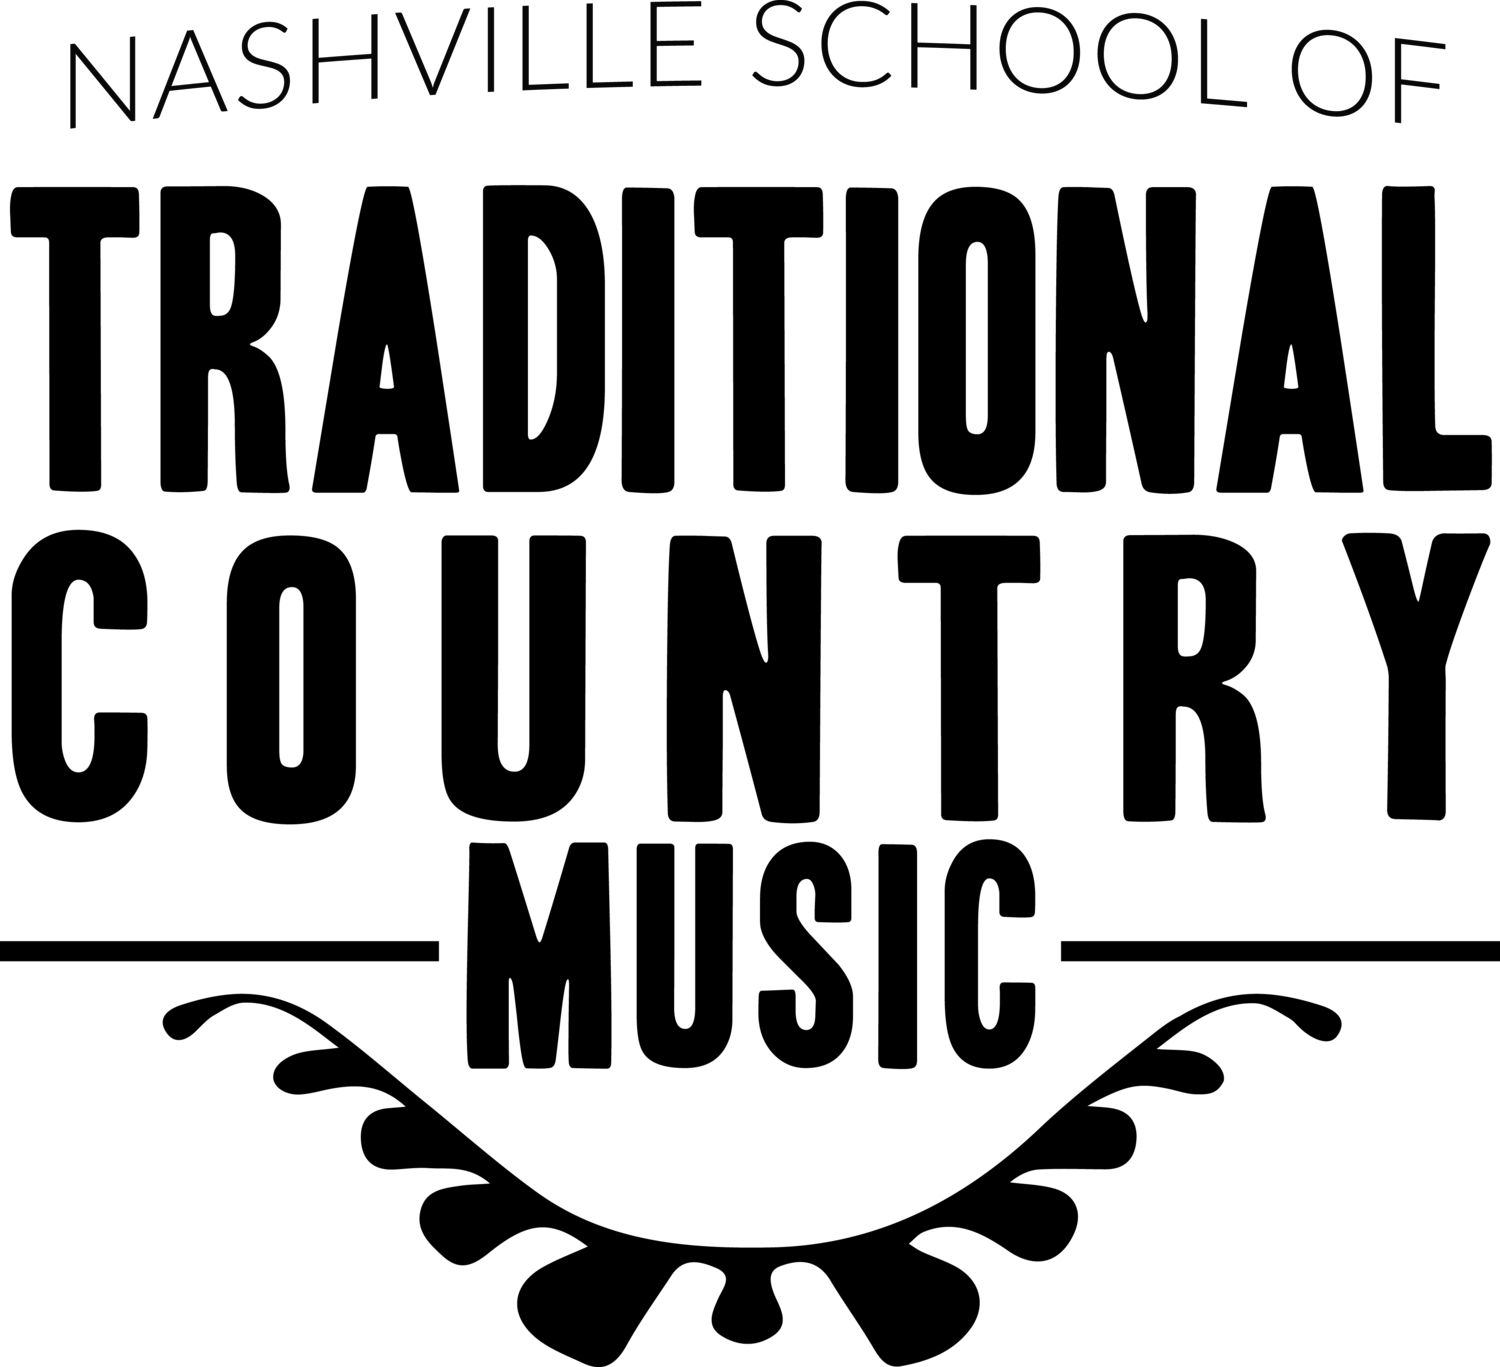 The Nashville School of Traditional Country Music